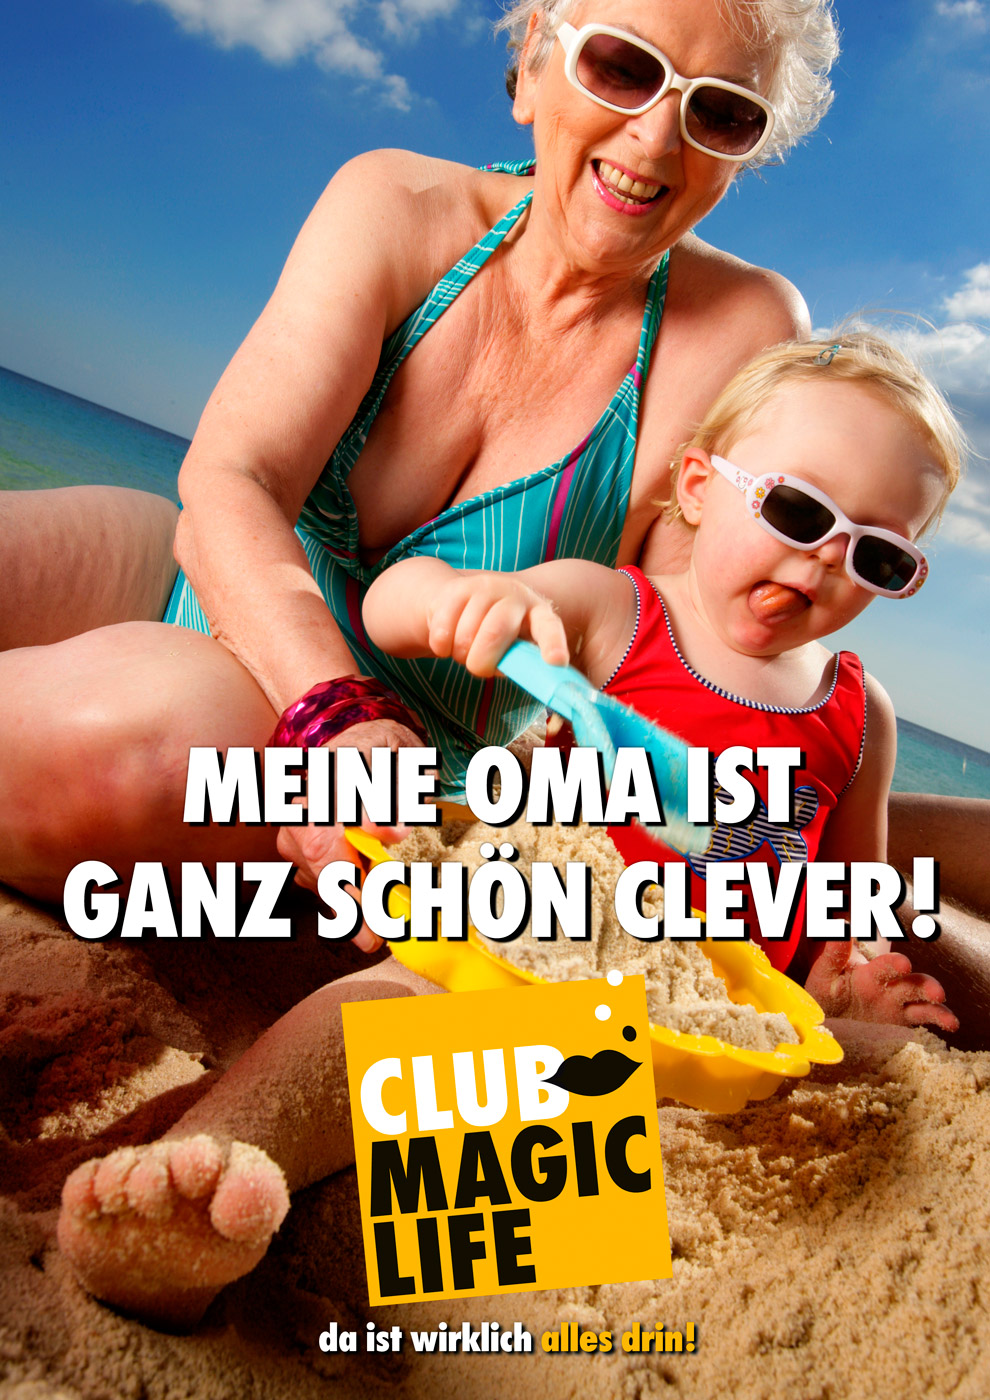 magiclife-anzeige-9